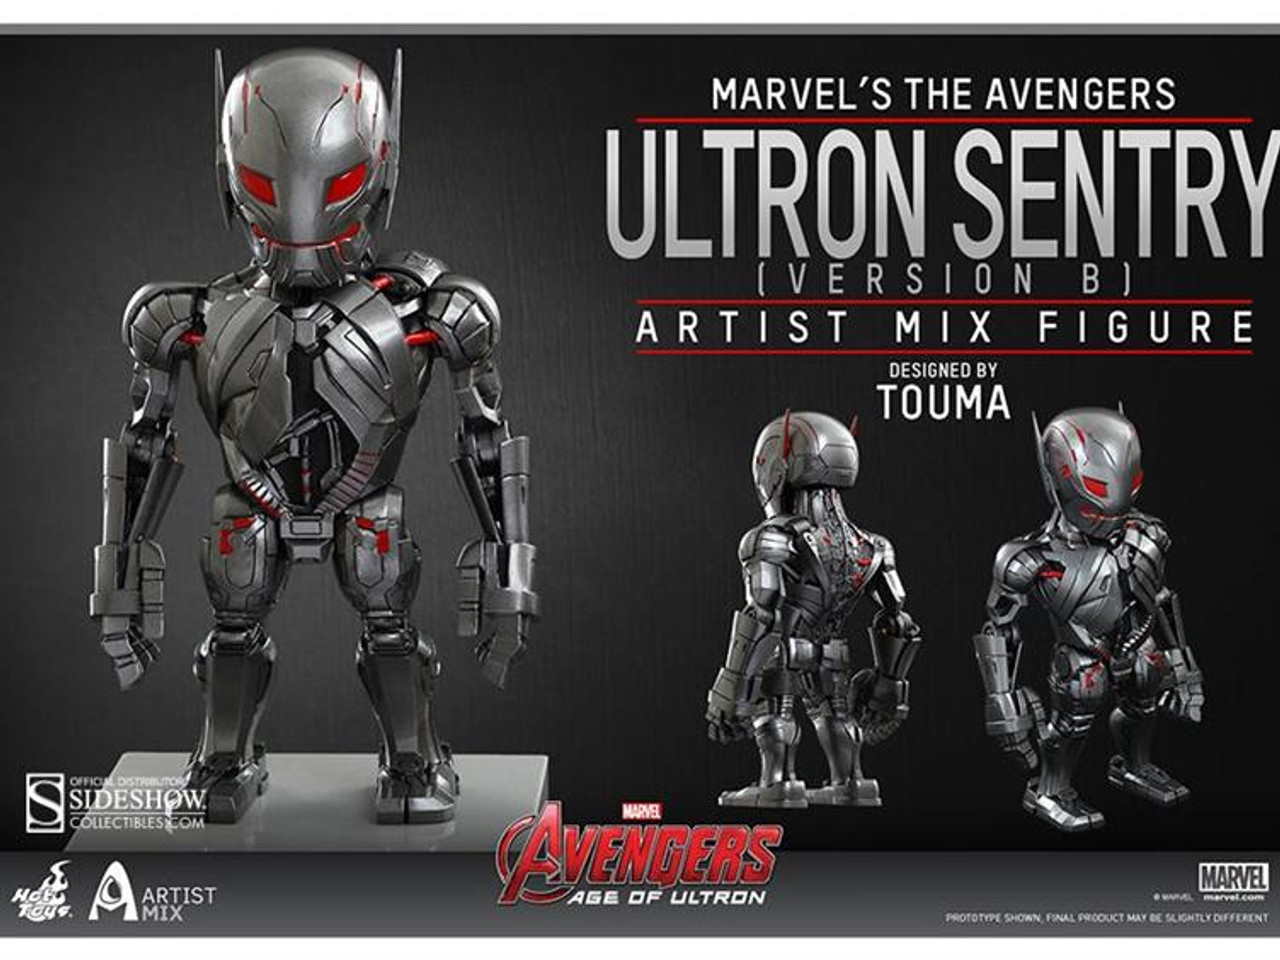 Marvel Avengers Age of Ultron Artist Mix Figure Series 1 Ultron Sentry Action Figure [Version B]